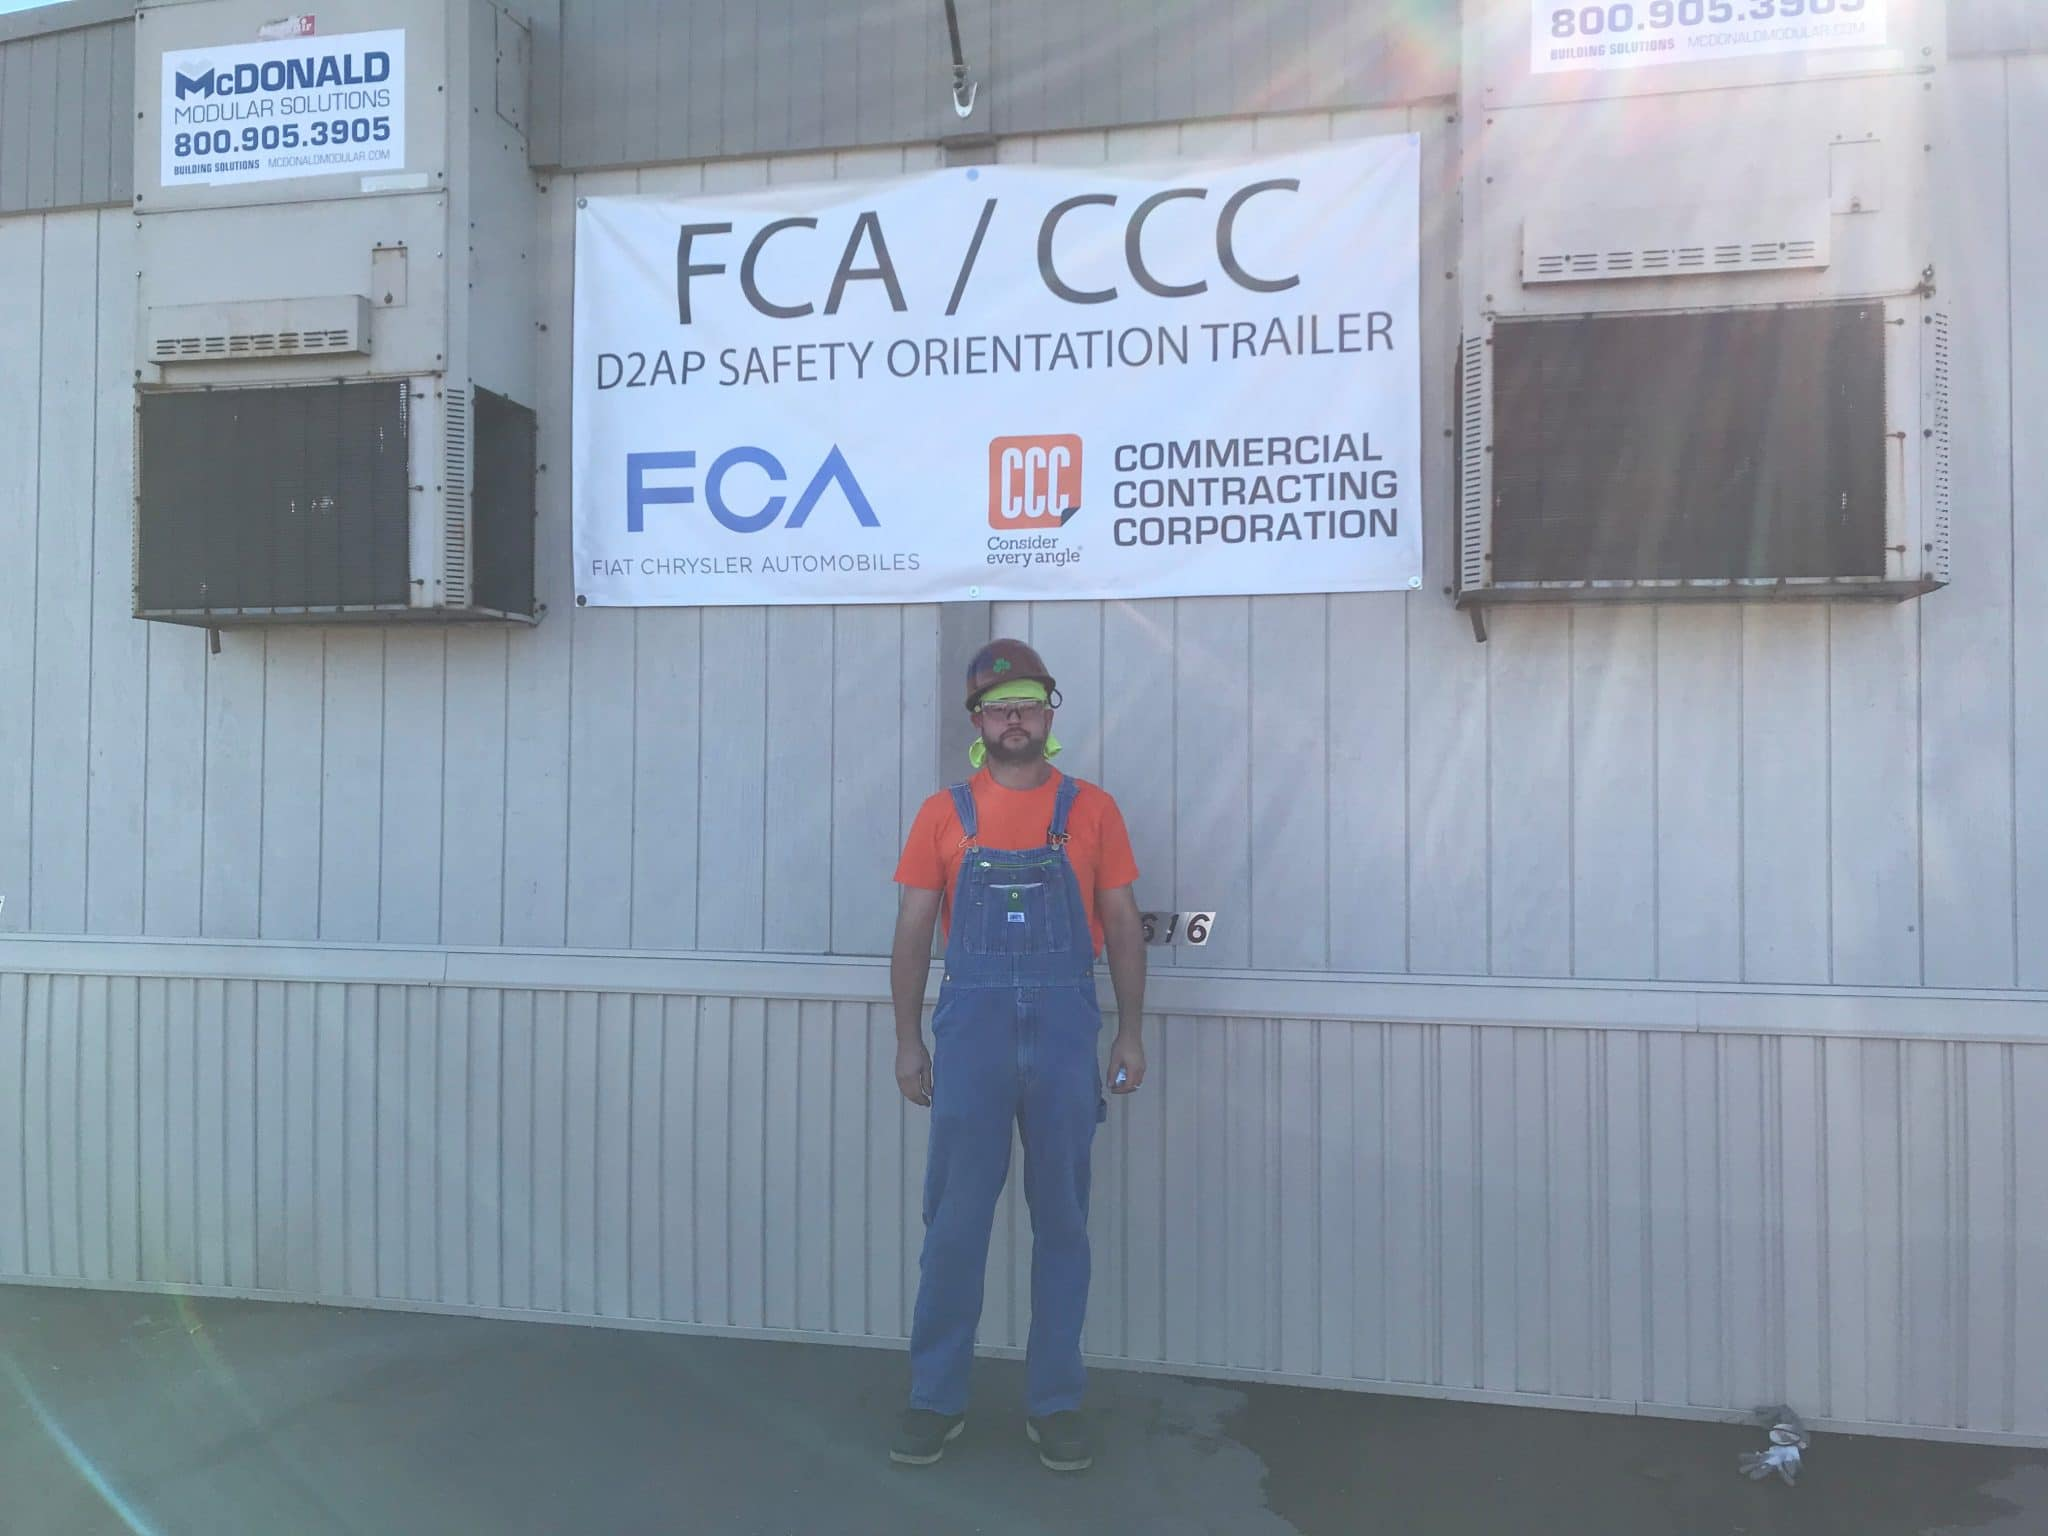 man in overalls stands below FCA/CCC sign